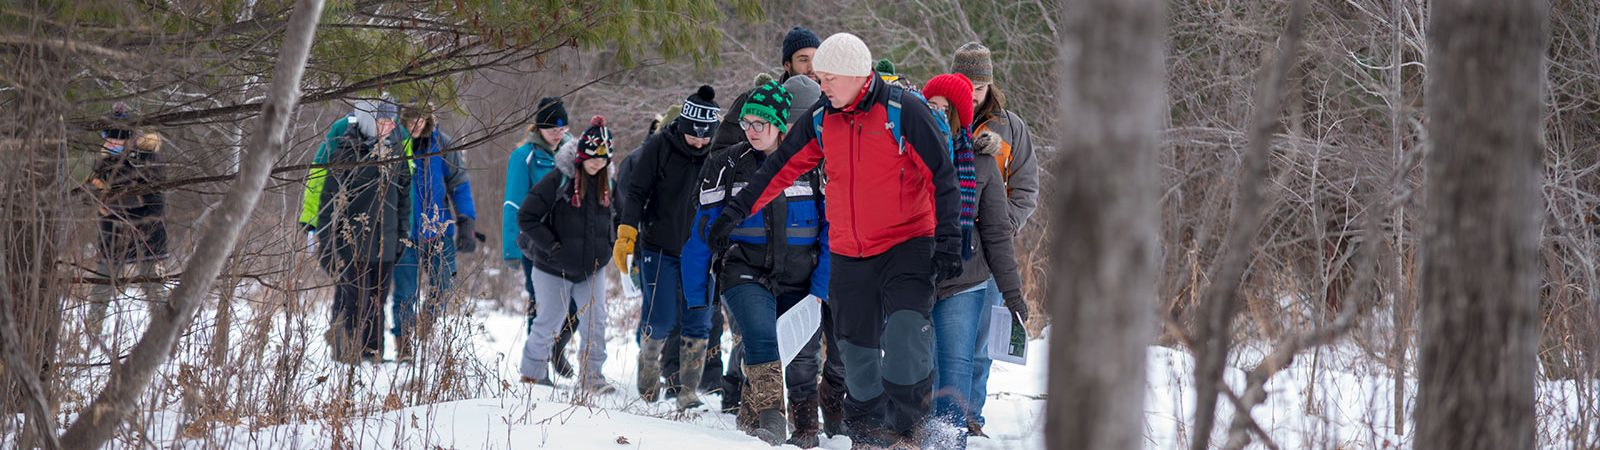 Northland College Professor Erik Olson leads wildlife ecology students on hike through Maxwell Nature Area, south of campus.